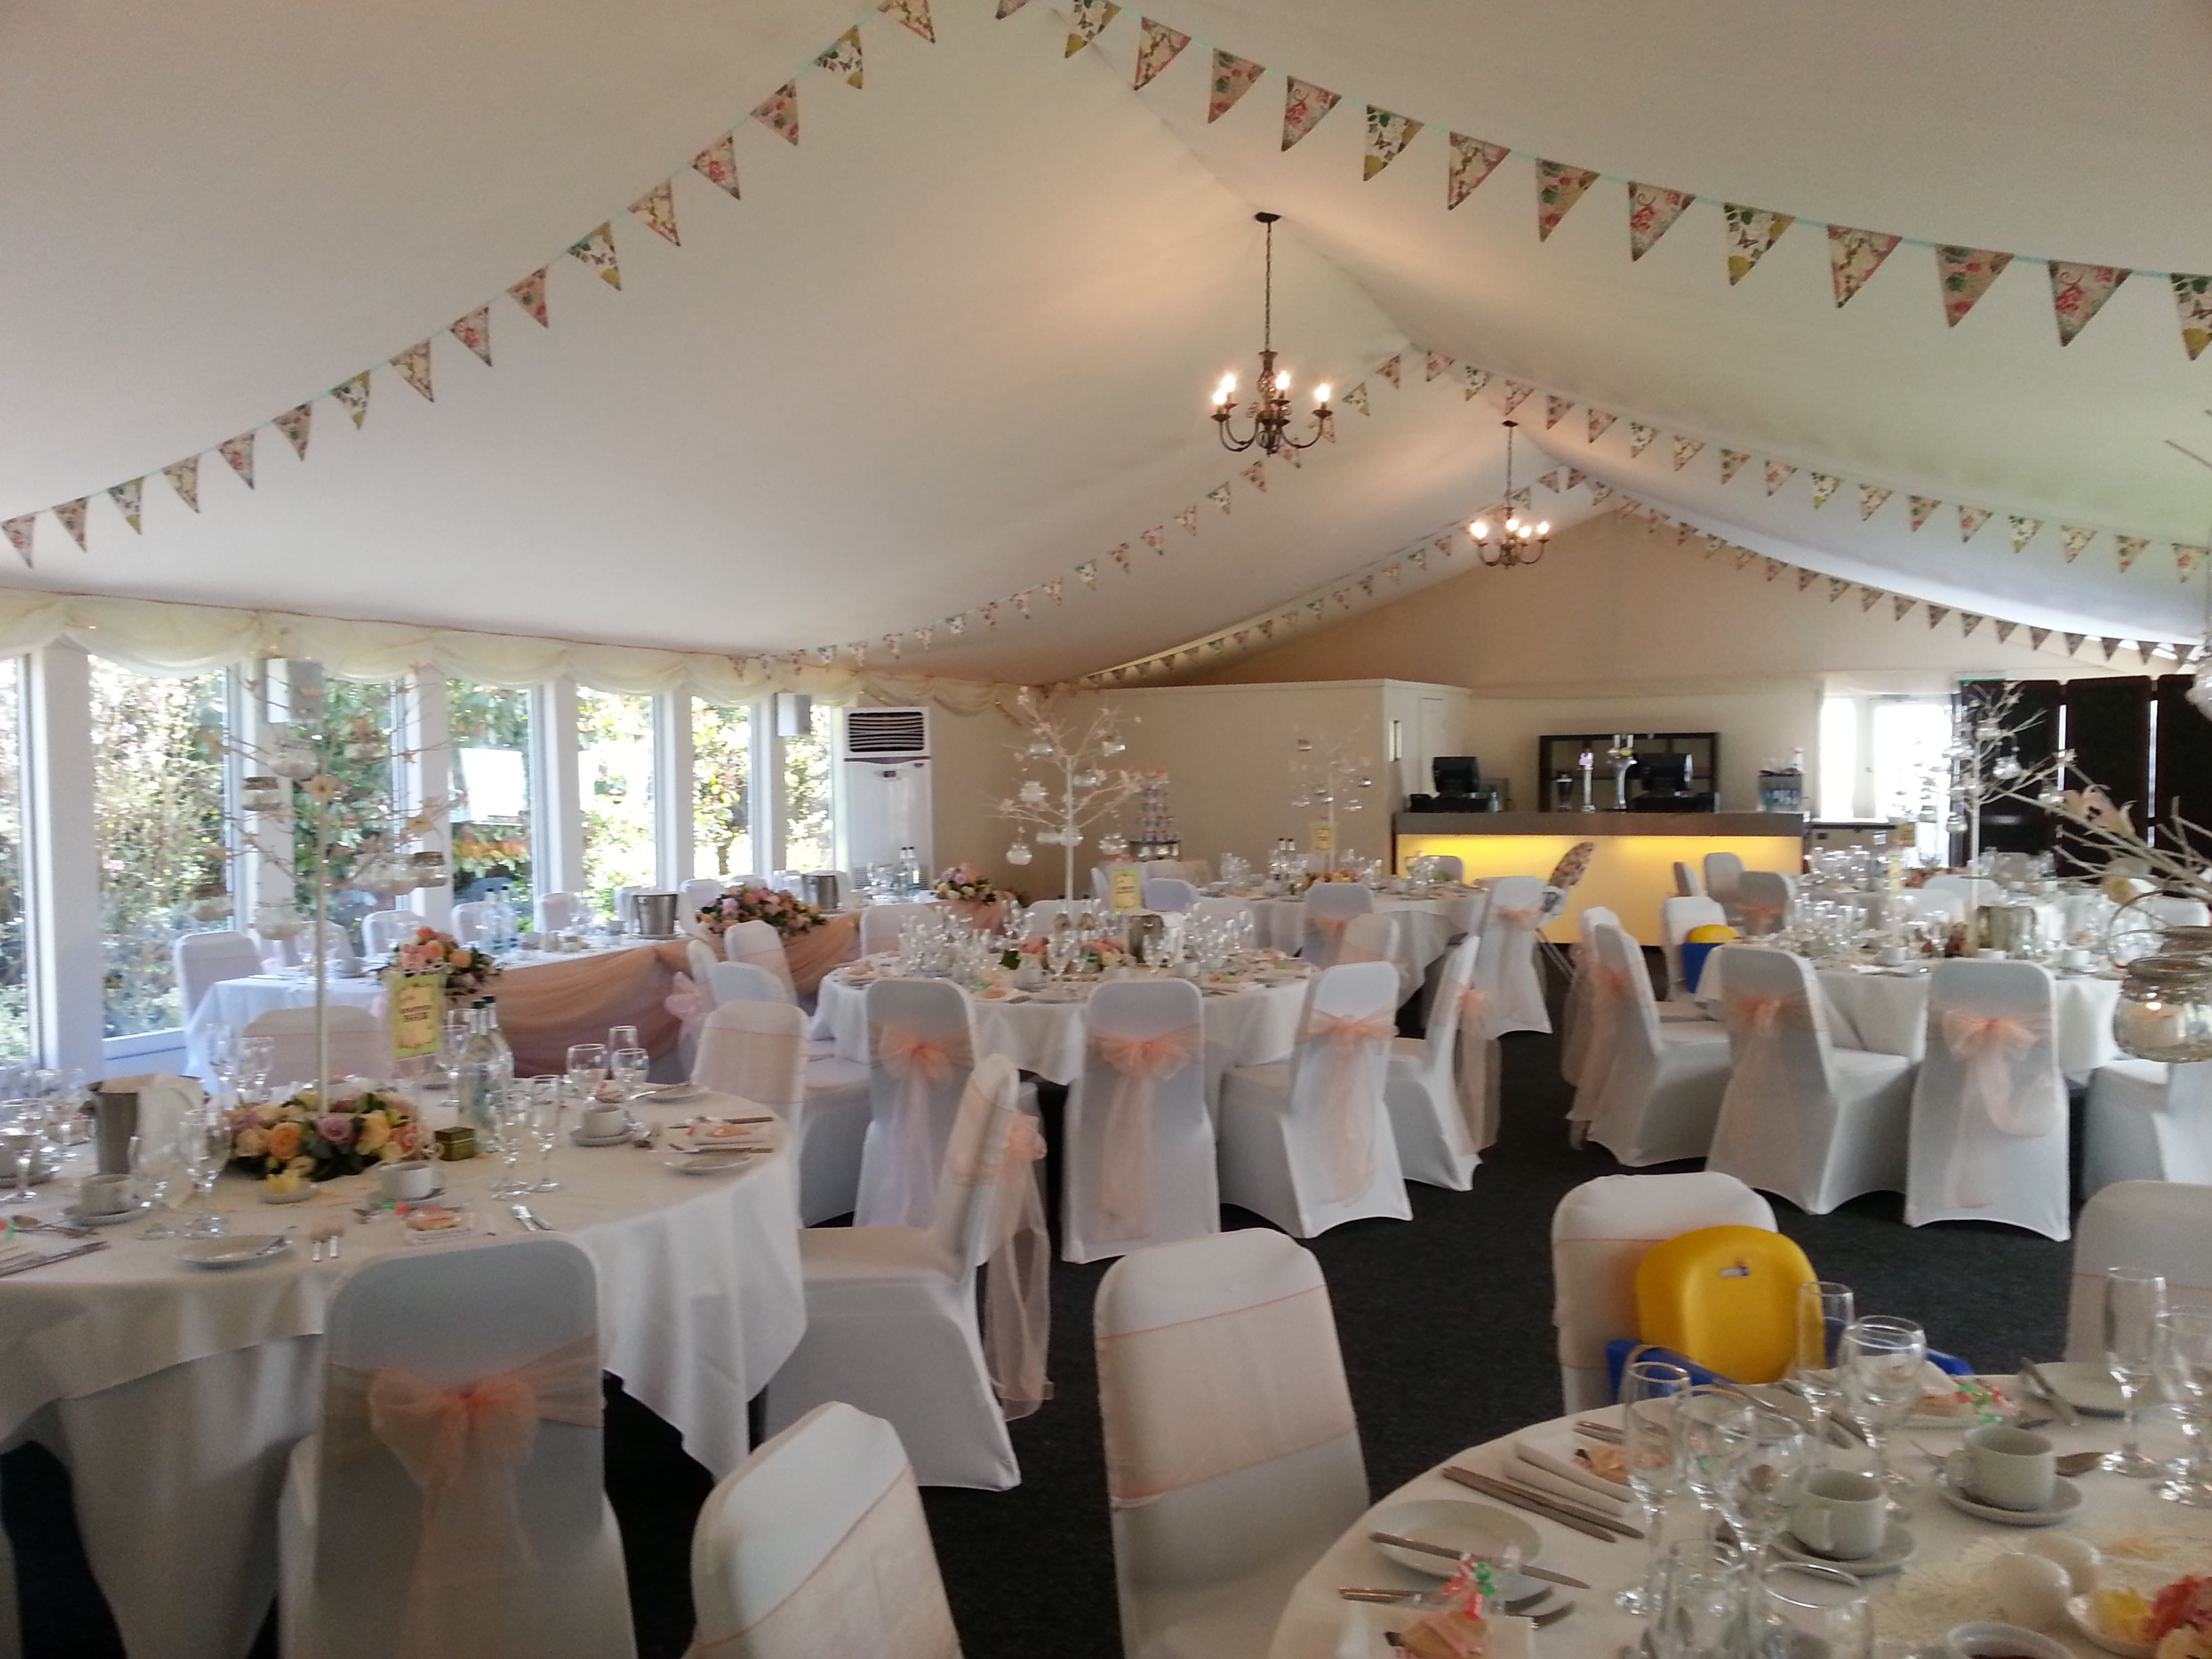 Wedding Venue Chair Covers And Sashes Lawn Fabric Peach On Chairs In The Hunton Park Marquee Holly